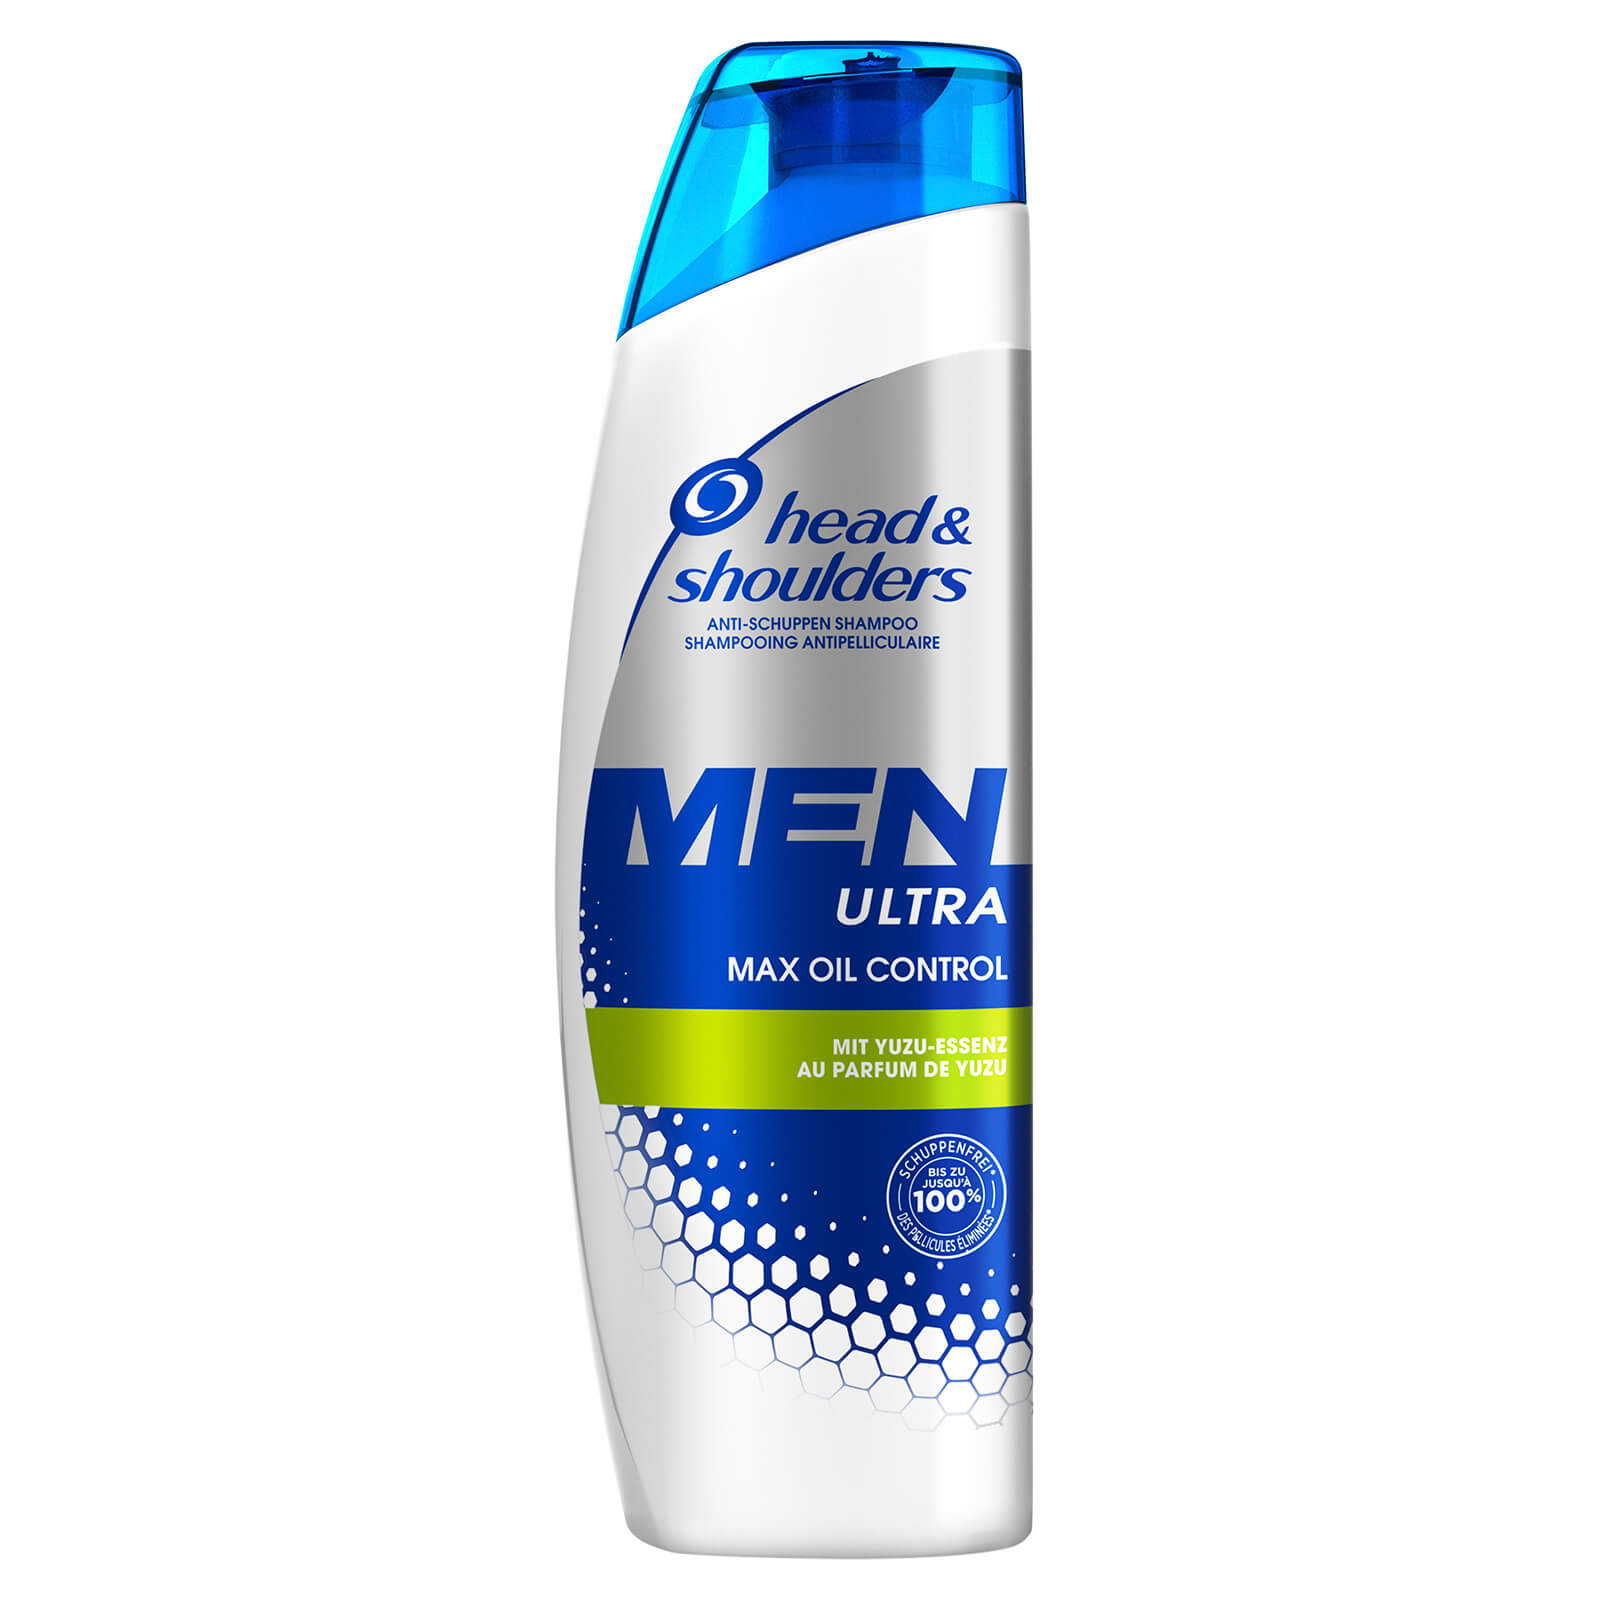 Men Ultra Max Oil Control Shampoo